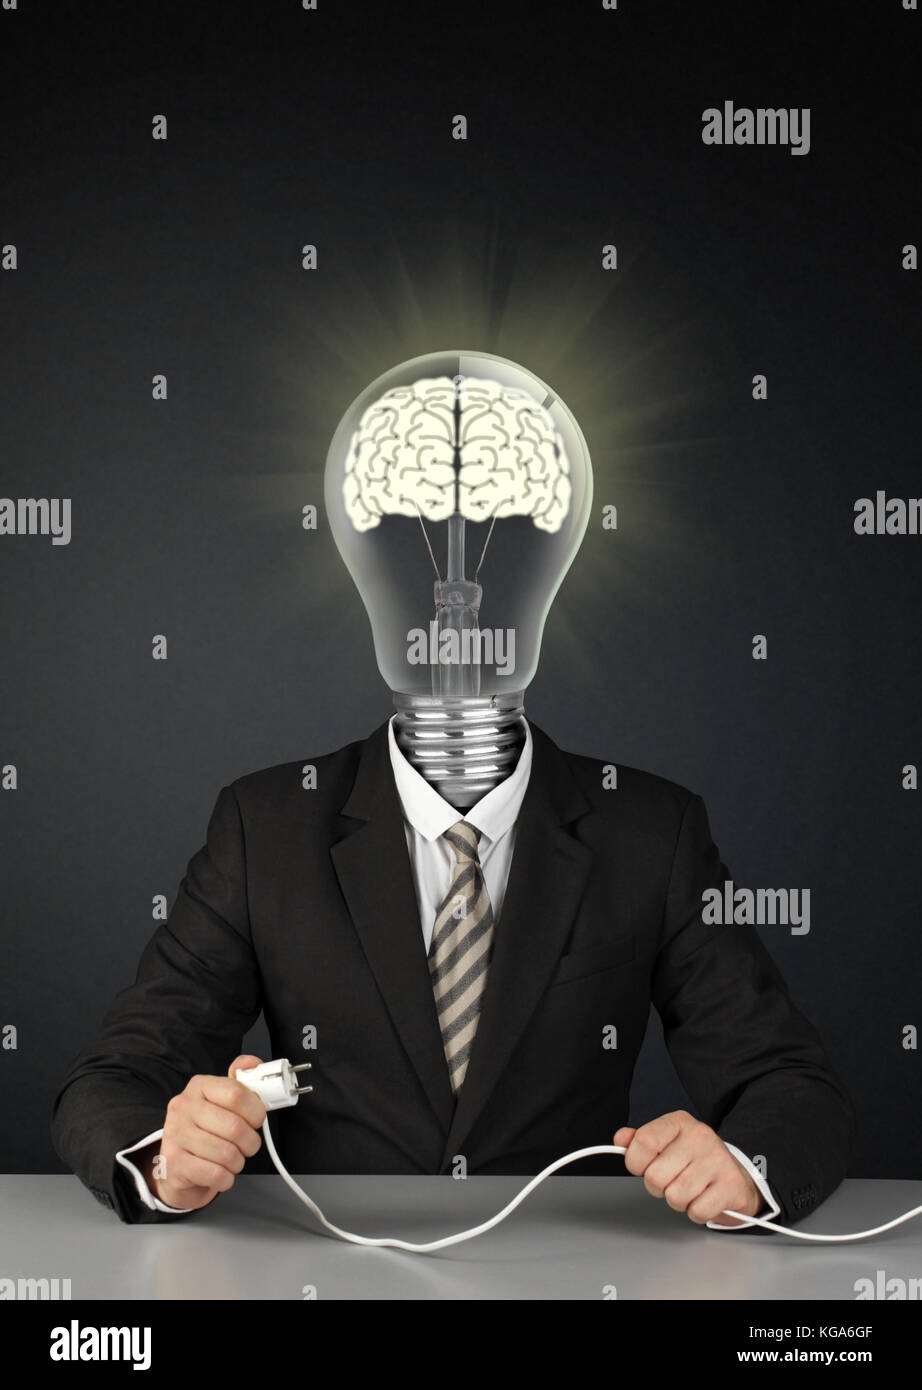 Businessman with Light bulb head et branchez l'interrupteur, cerveau concept créatif sur noir Photo Stock